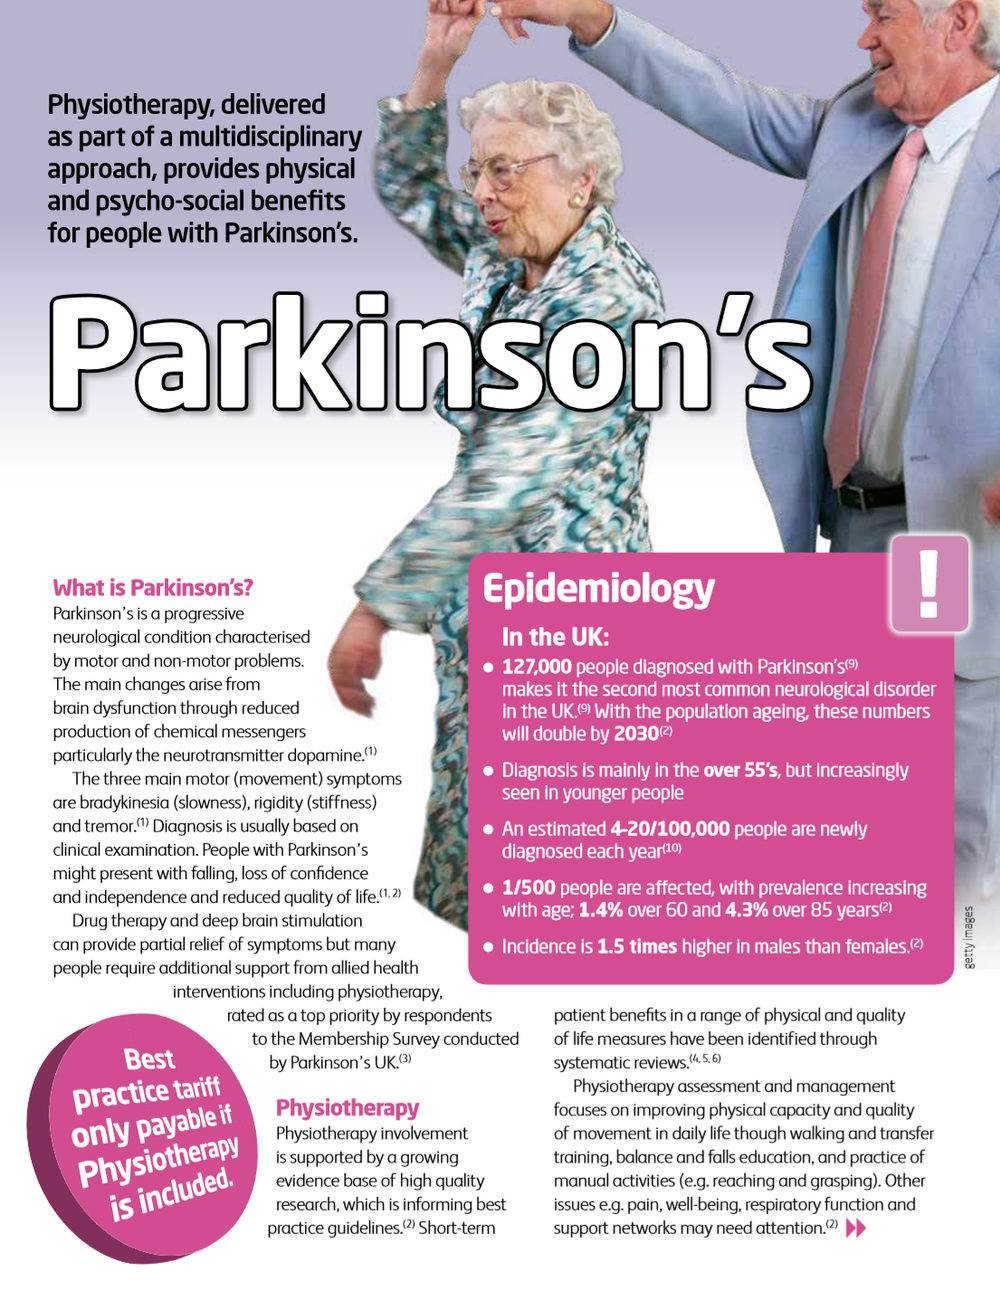 'Parkinson's Disease' Physiotherapy Works - Chartered Society of Physiotherapy